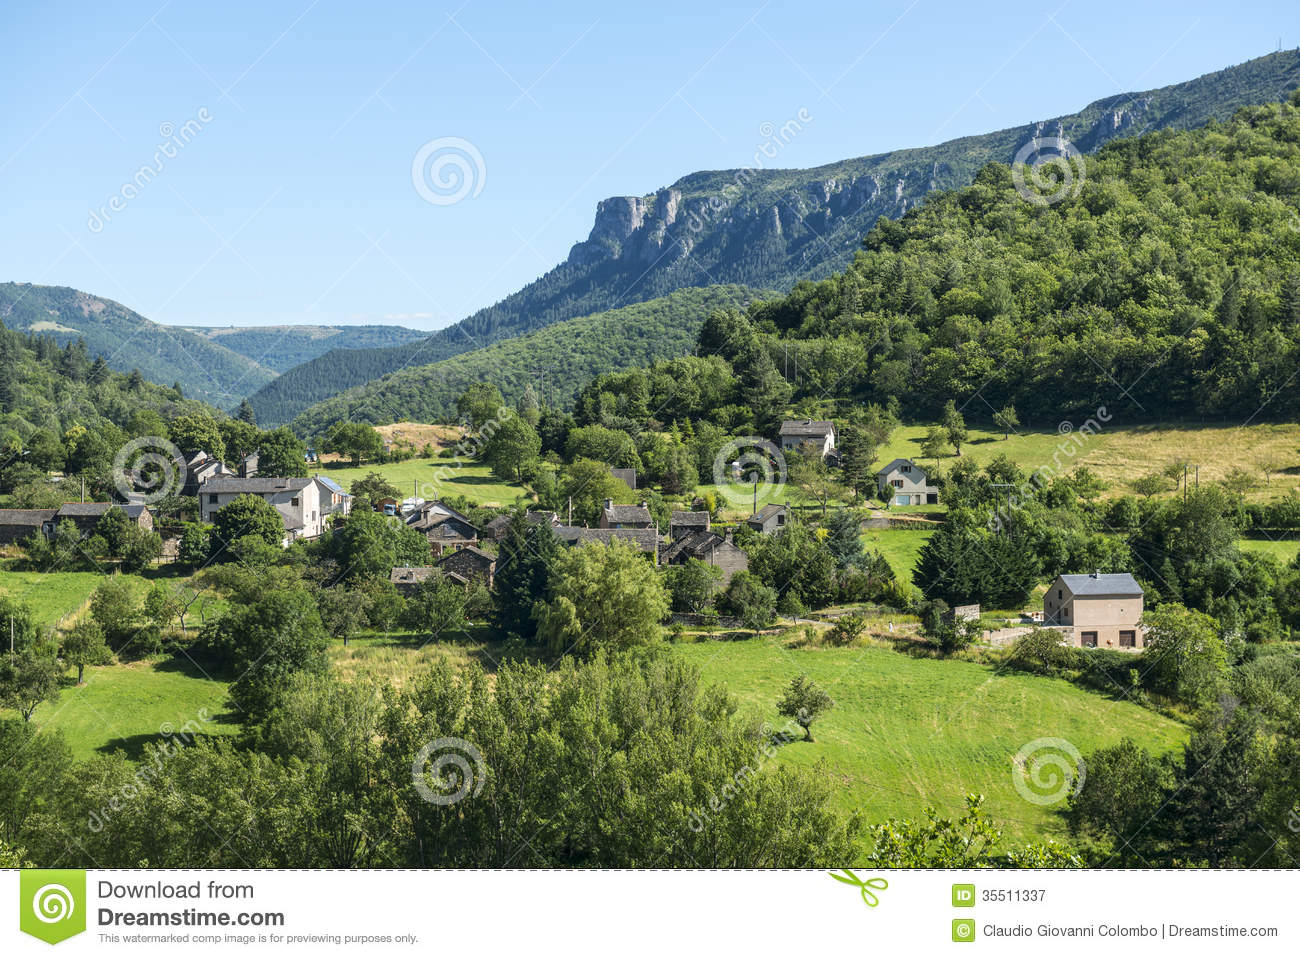 Royalty Free Stock Photography Cevennes Mountain Landscape Parc Des Gard Languedoc Roussillon France Summer Small Village Image35511337 on french country house plans